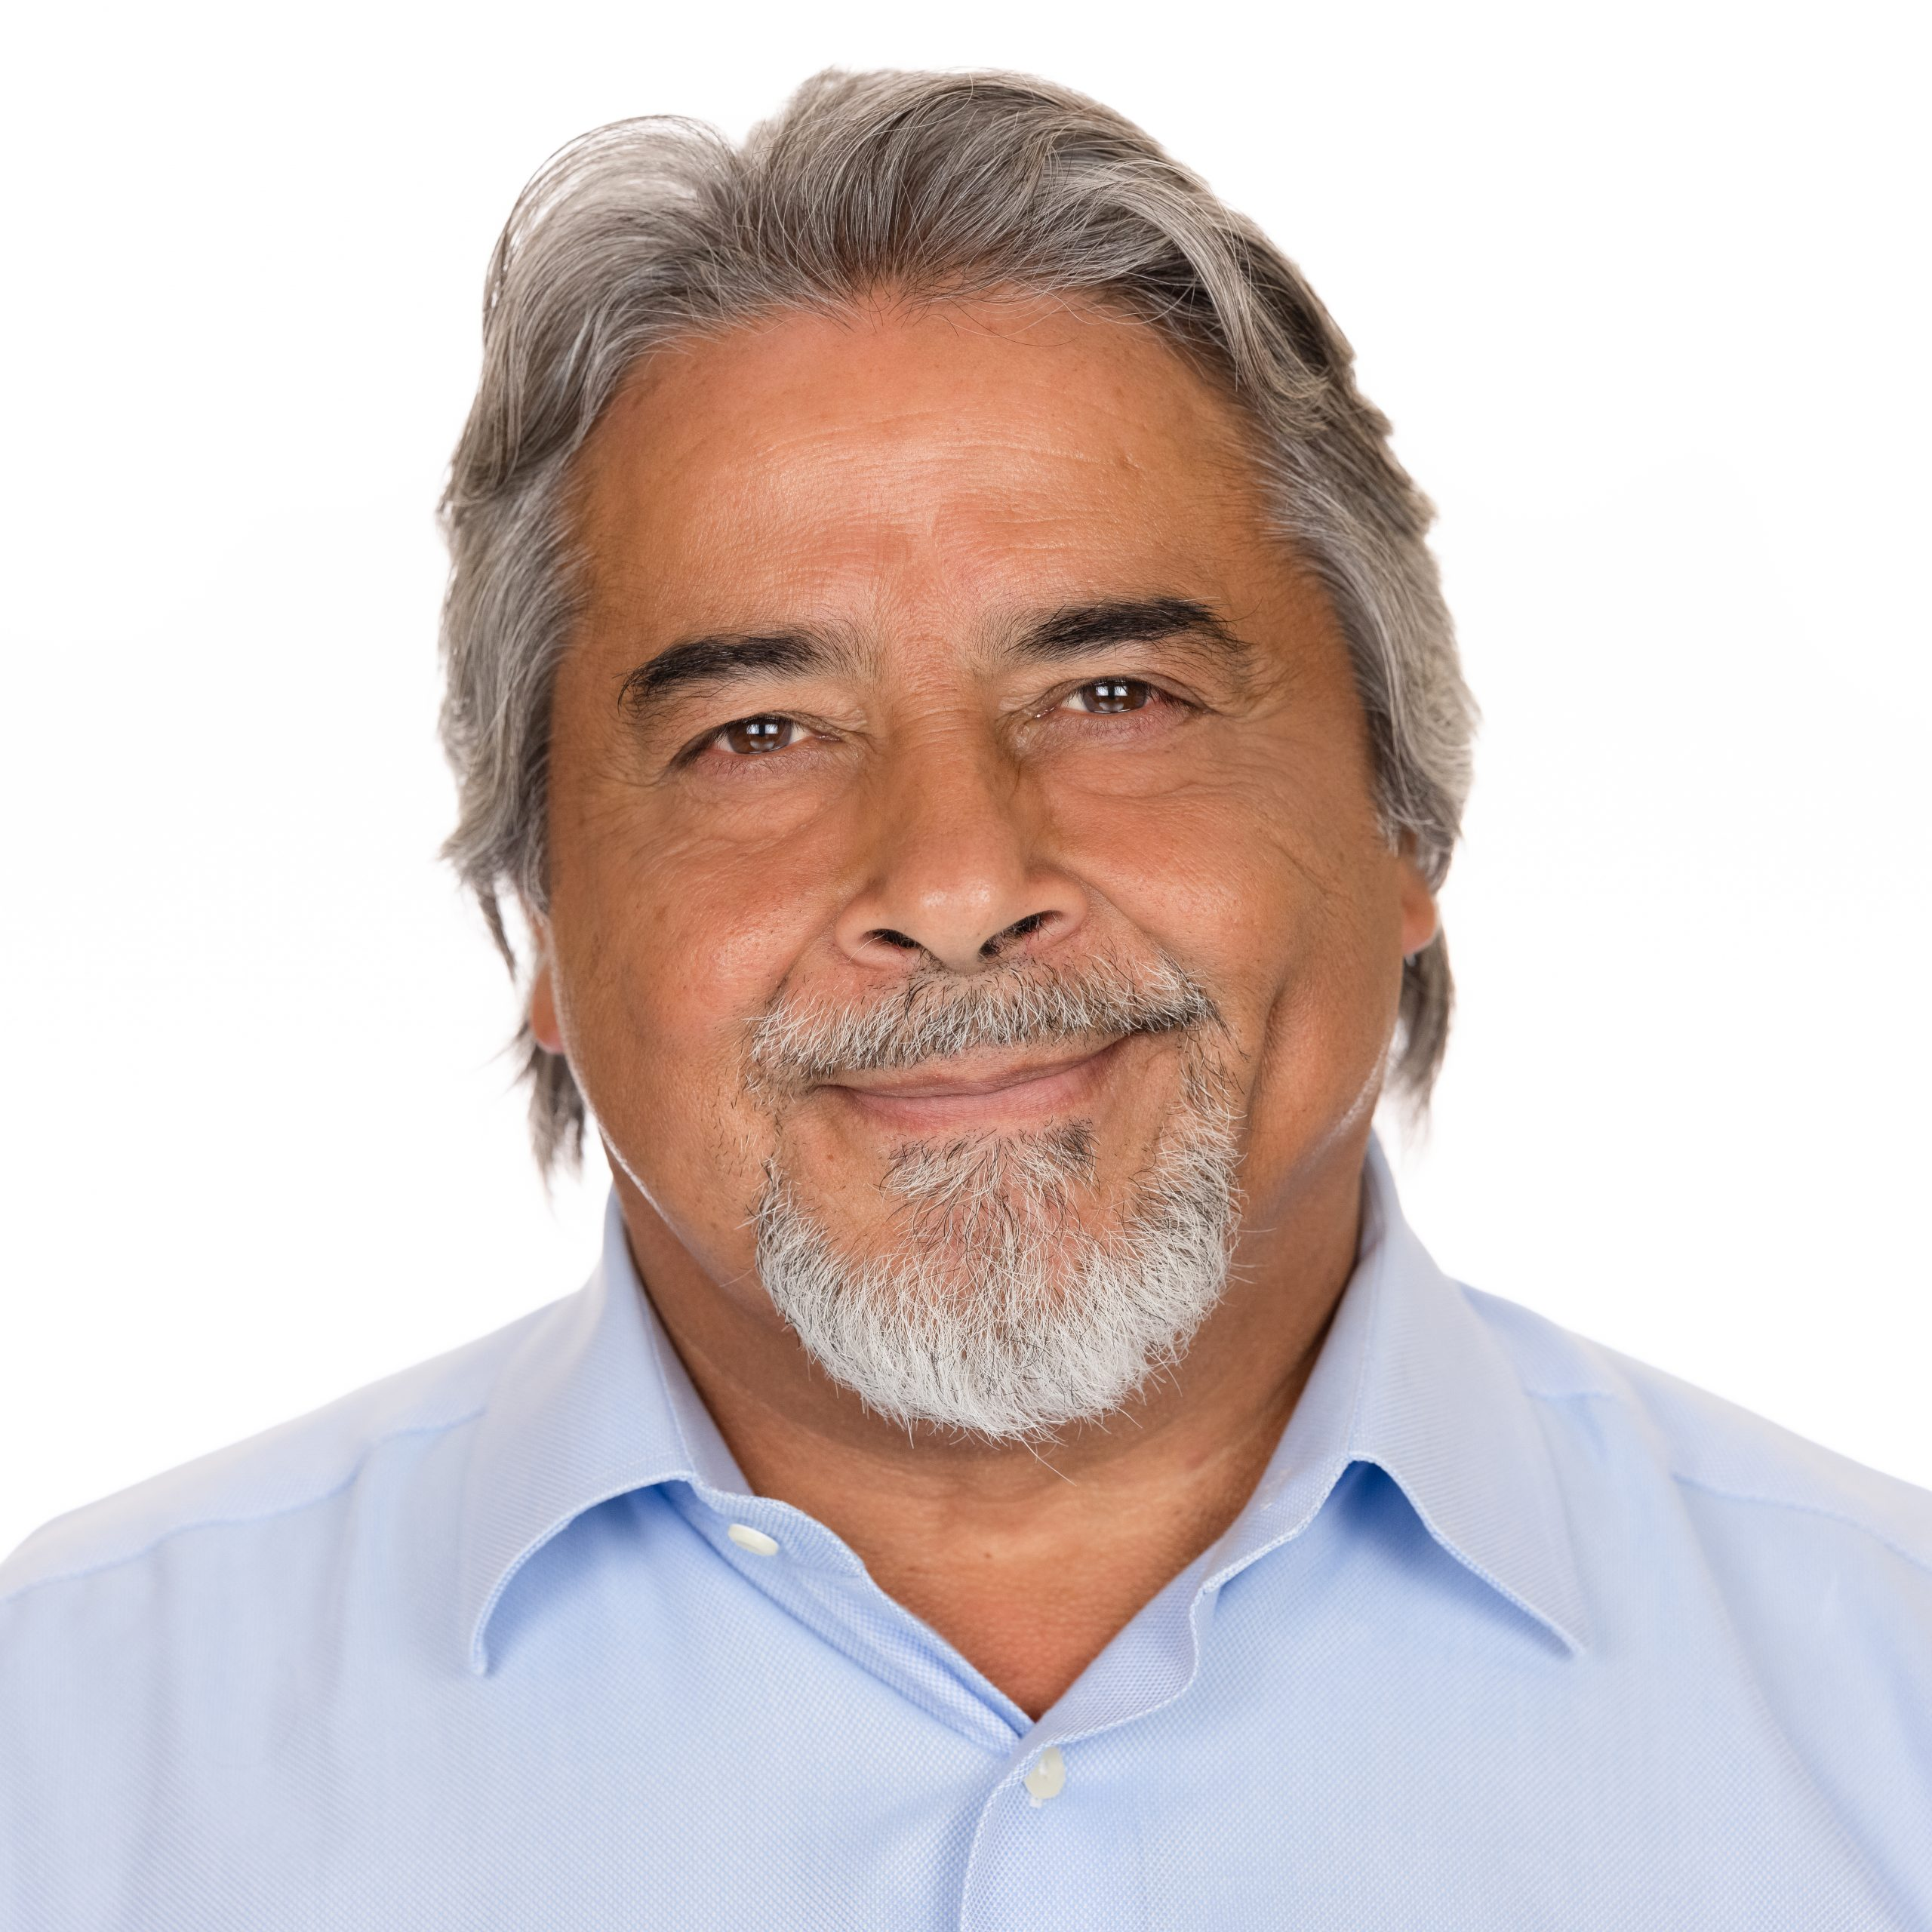 Manny Quevedo – Manny has been co-founder and Chief Executive Officer of OpsCompass since its inception in 2016. Prior to founding OpsCompass, Manny held various roles, including Global Chief Business Development Officer for global information security provider NTT Security, co-founder and Chief Executive Officer of data center provider CoSentry, and leadership positions at Inacom Corp, Nextel, and MCI. Manny has worked in the information security industry as a corporate officer, entrepreneur, writer, speaker, technologist, and business strategist.